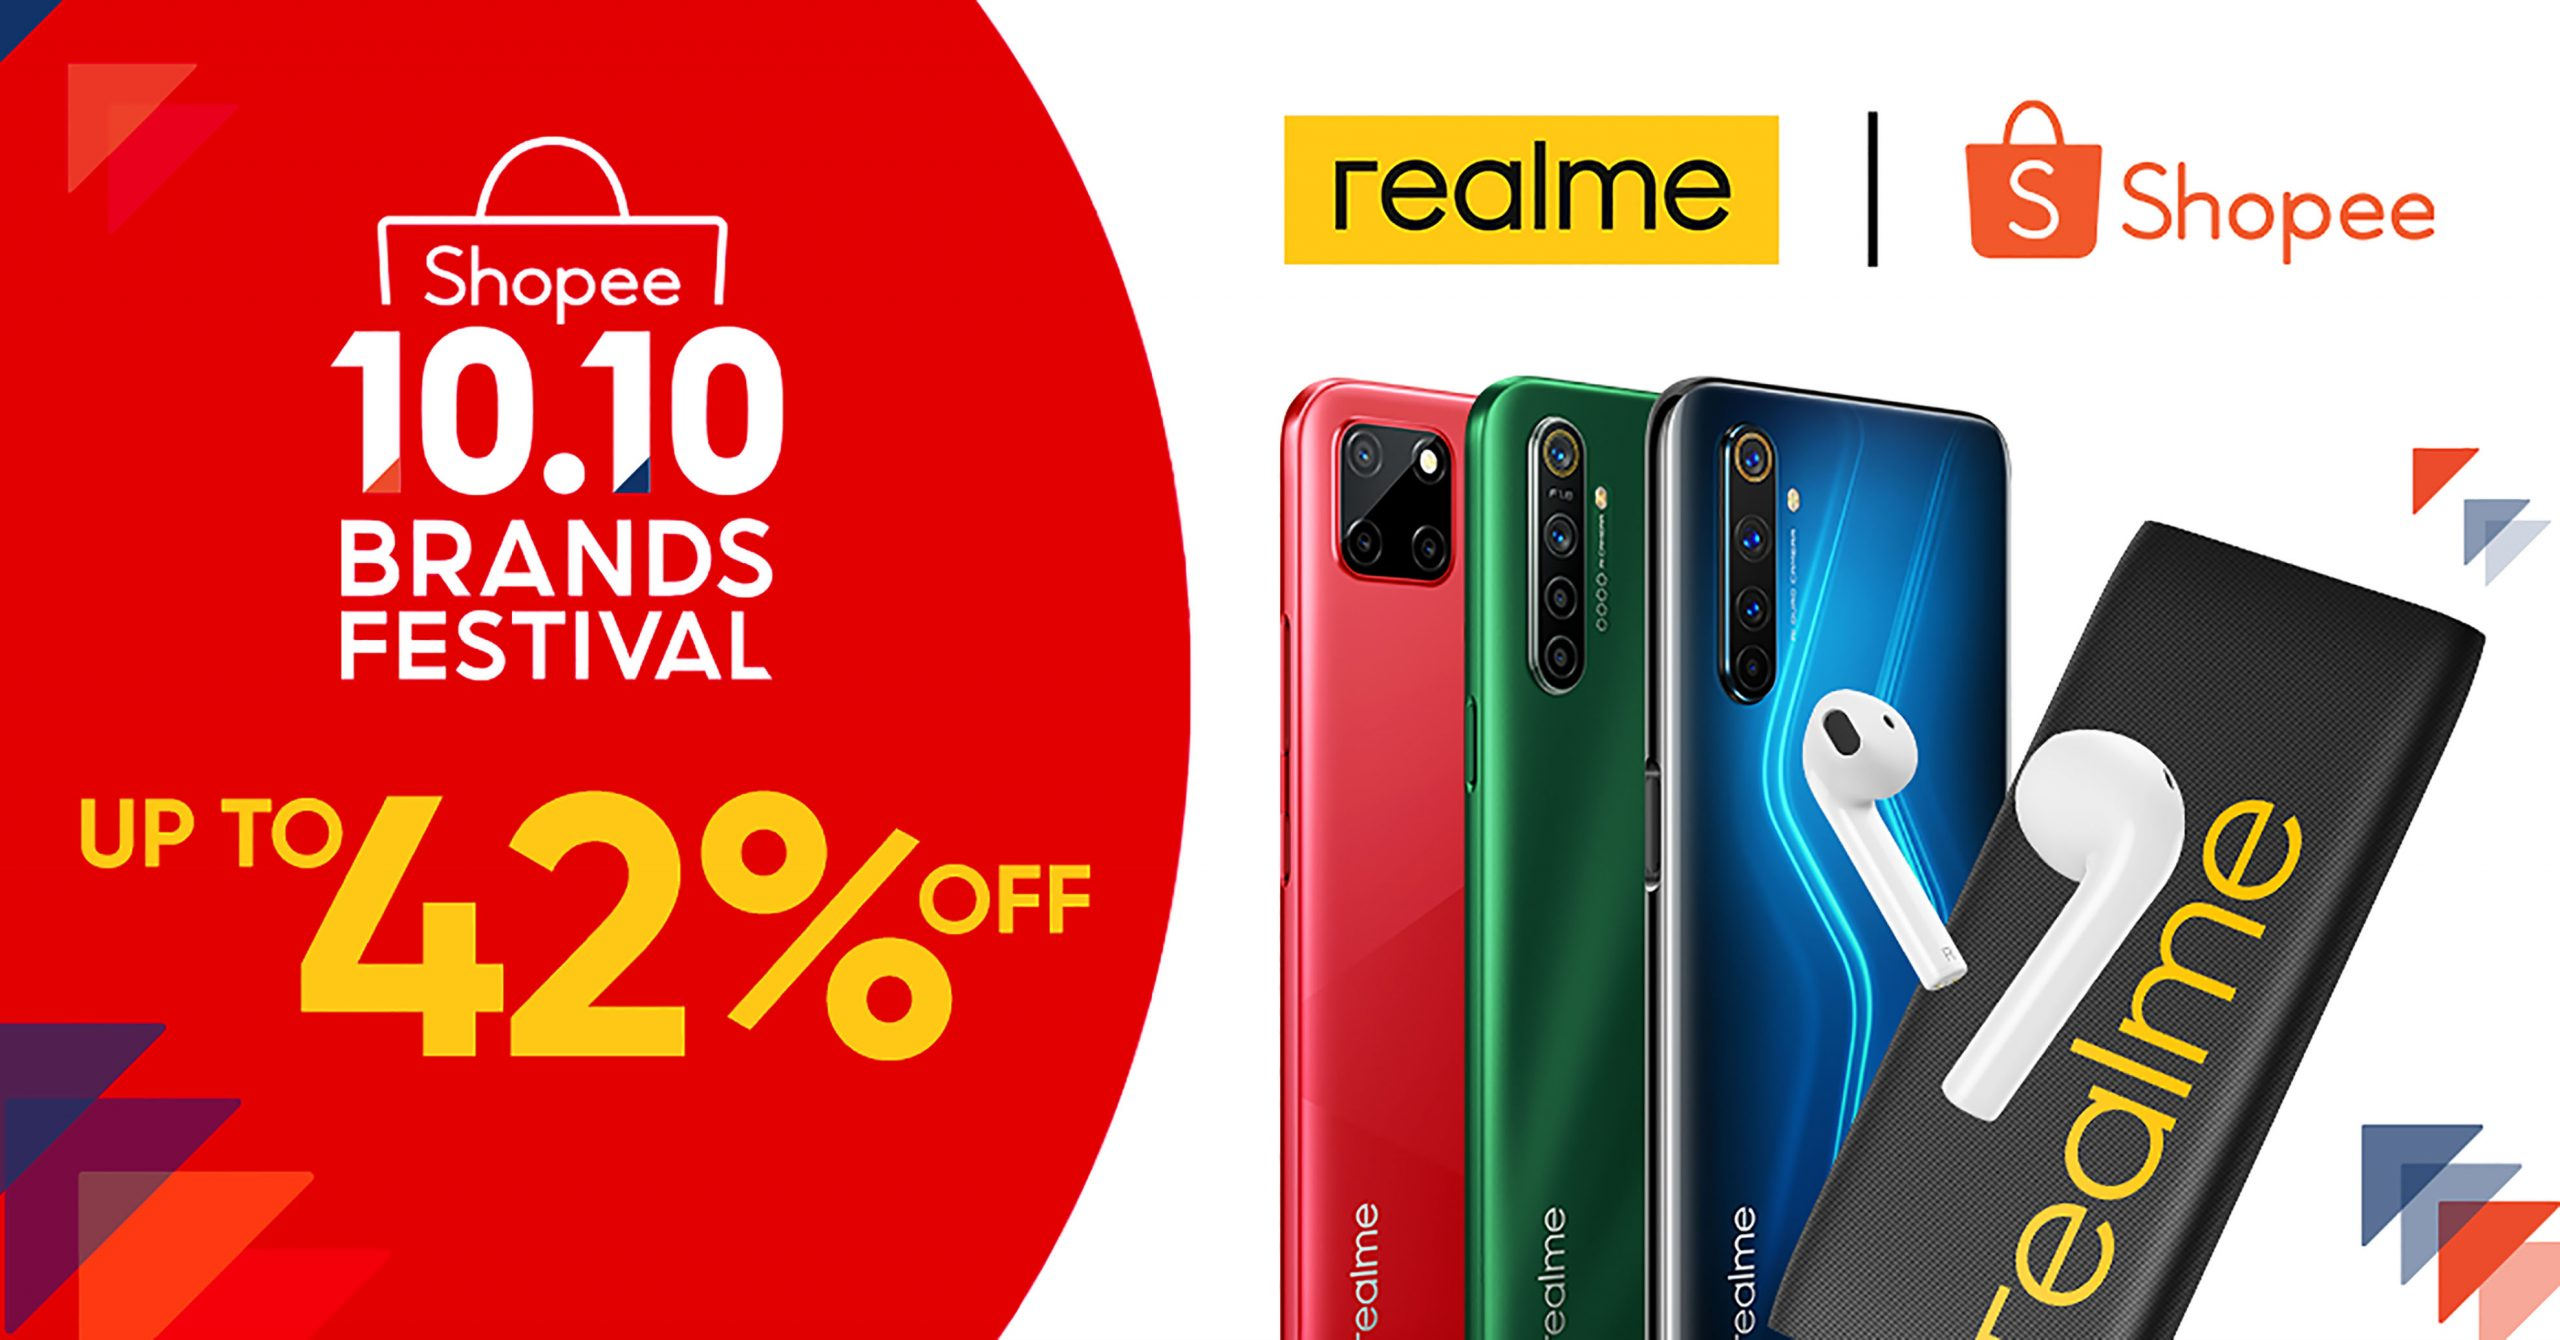 get-realme-6-pro-for-php14990-only-at-10-10-shopee-brand-sale